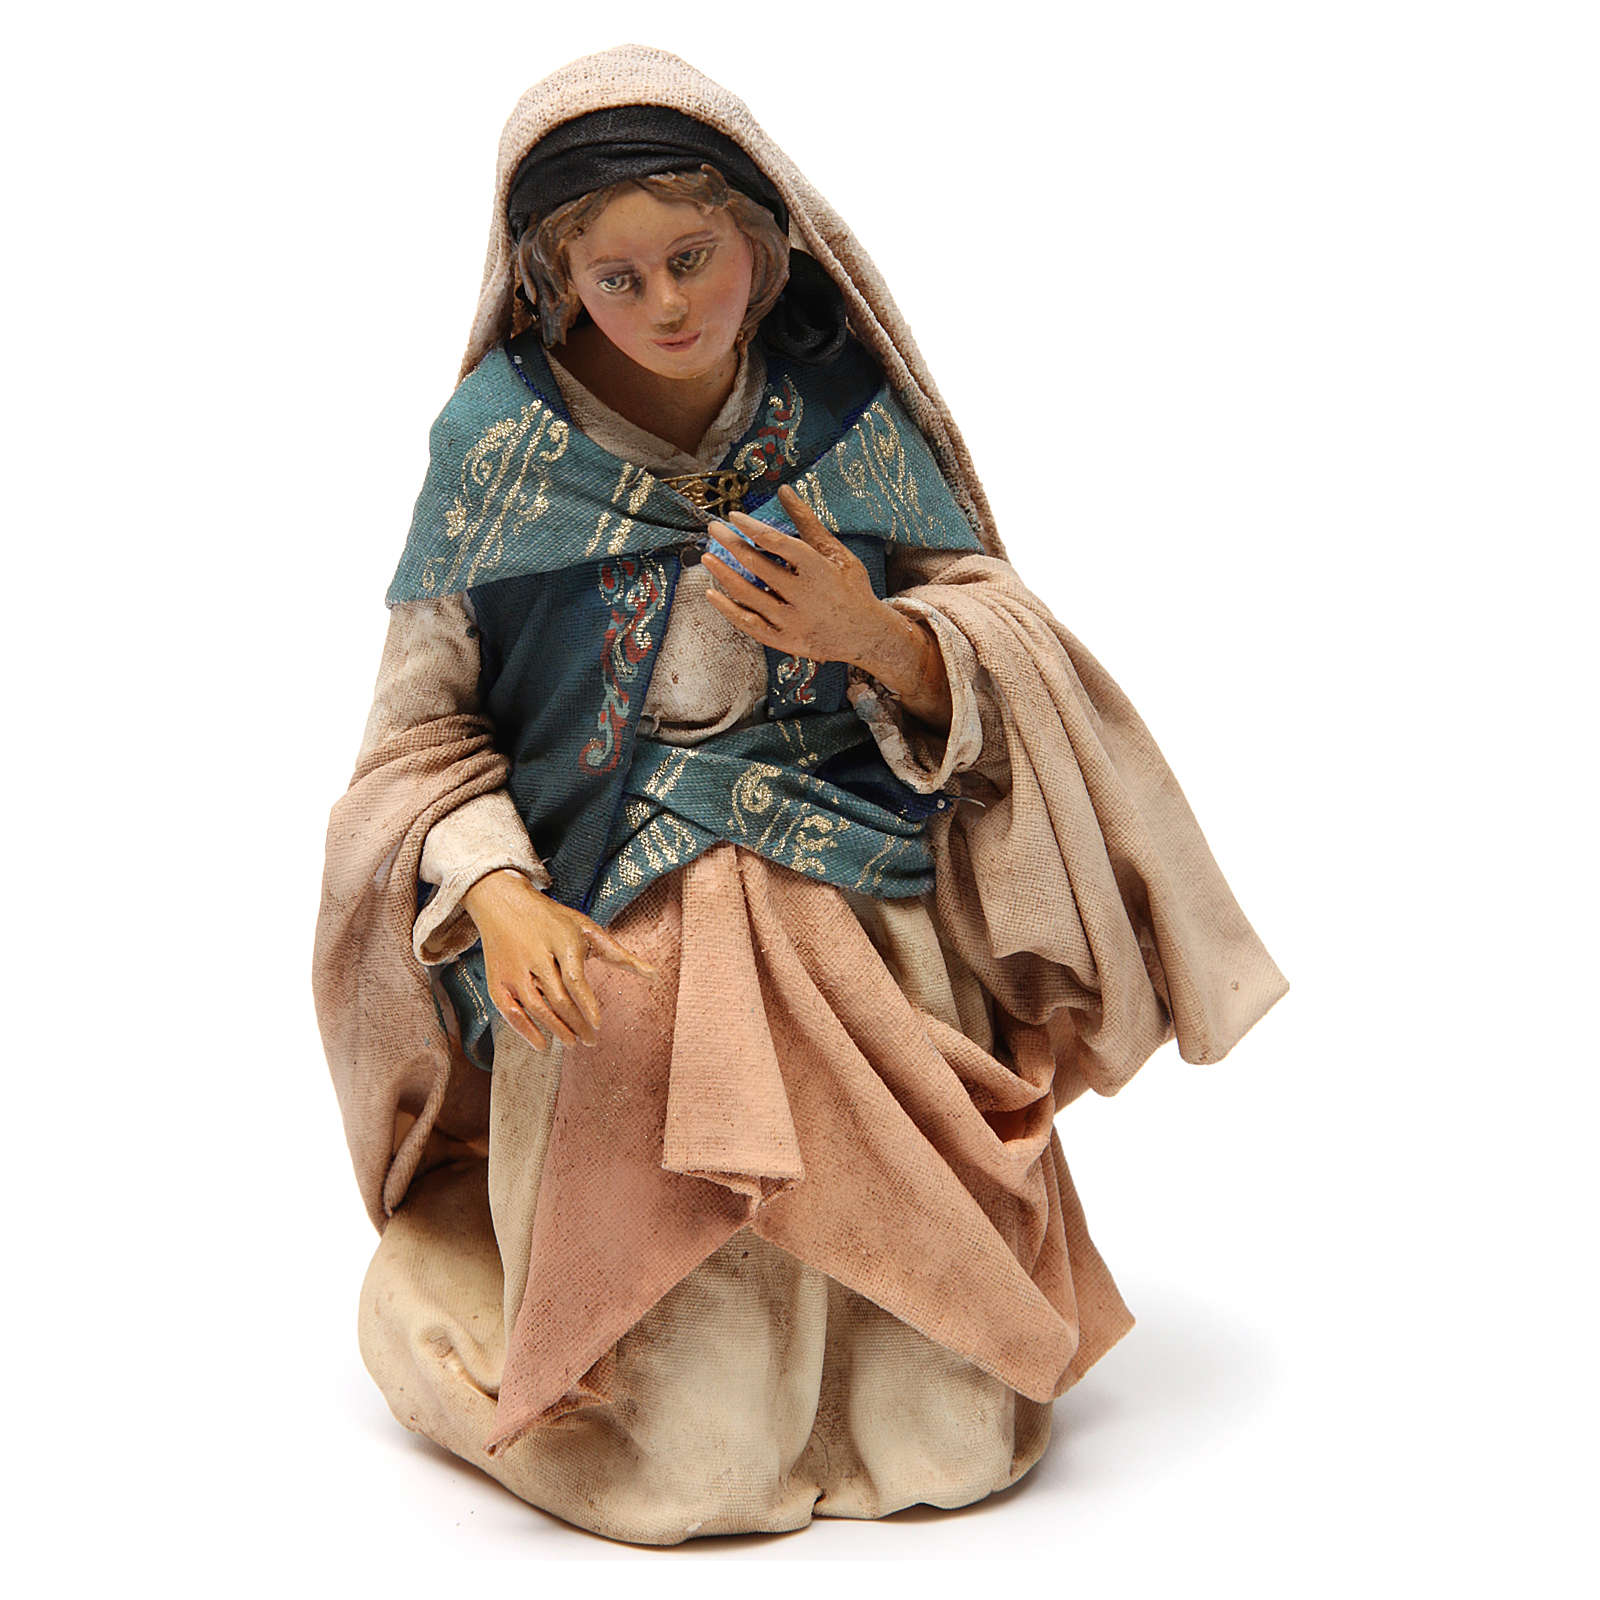 Natività 18 cm Angela Tripi terracotta 4